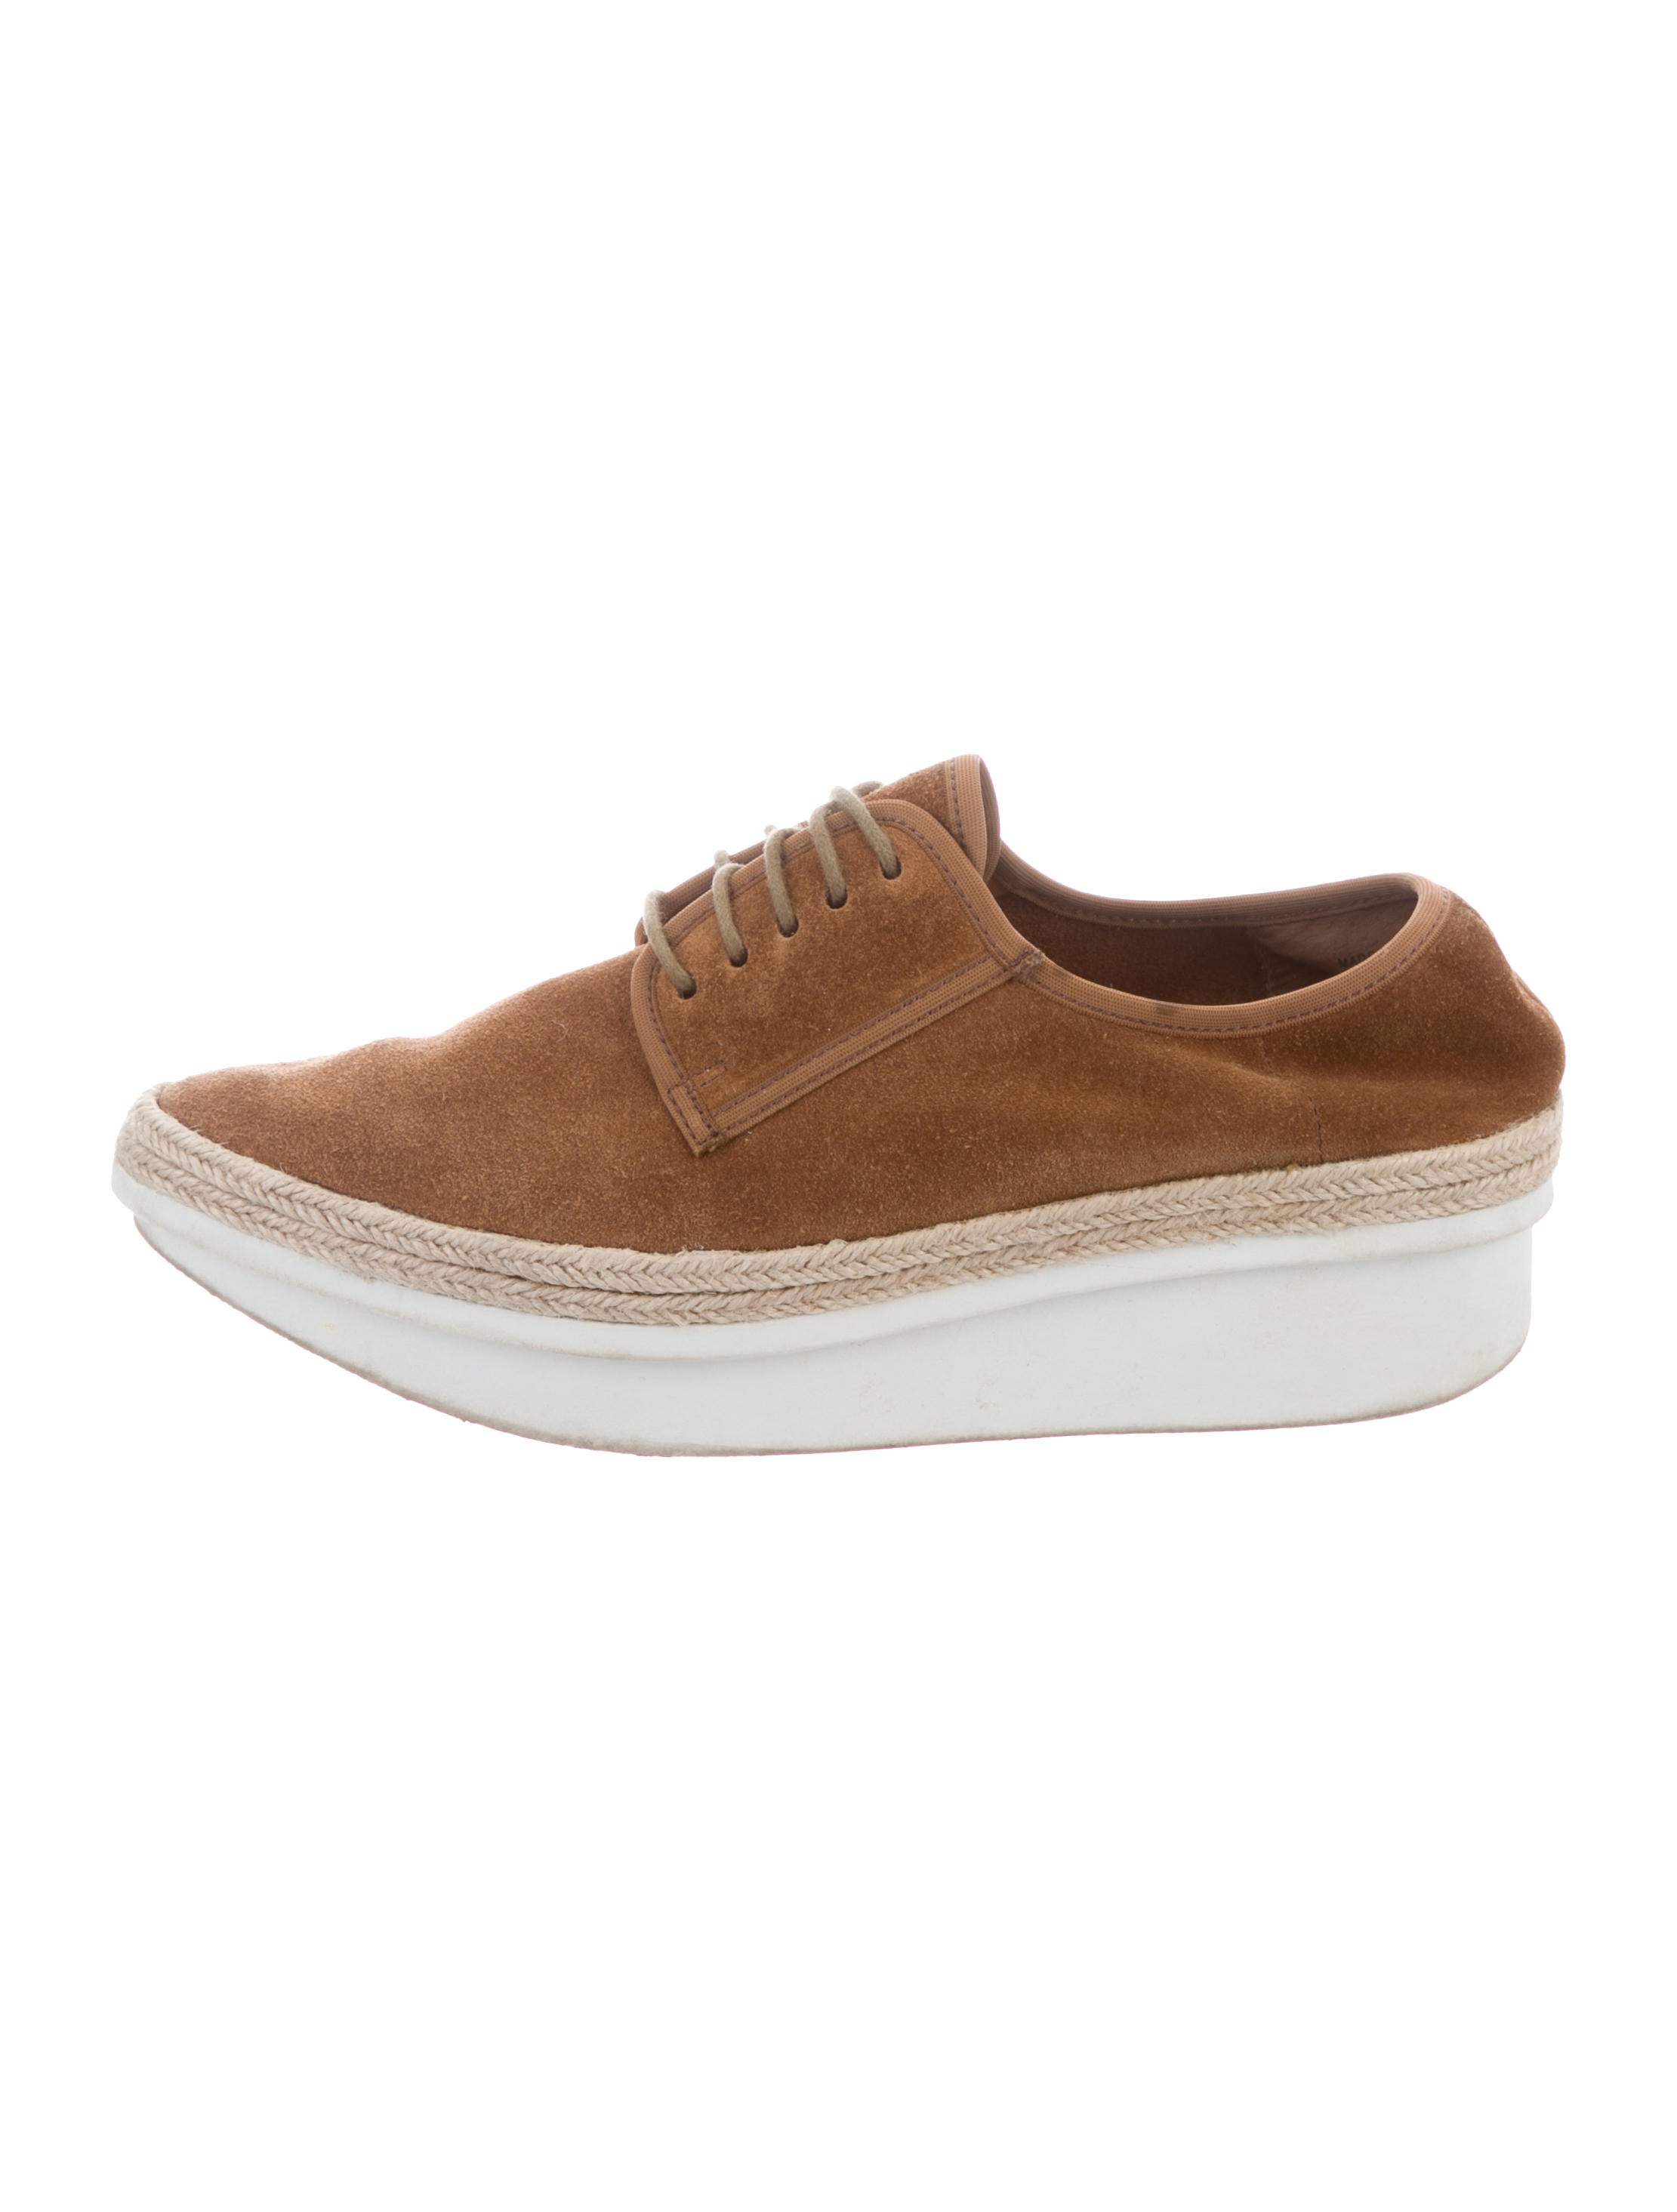 clearance visit new Derek Lam 10 Crosby Suede Wedge Oxfords buy cheap official Hc8ywy1RMs